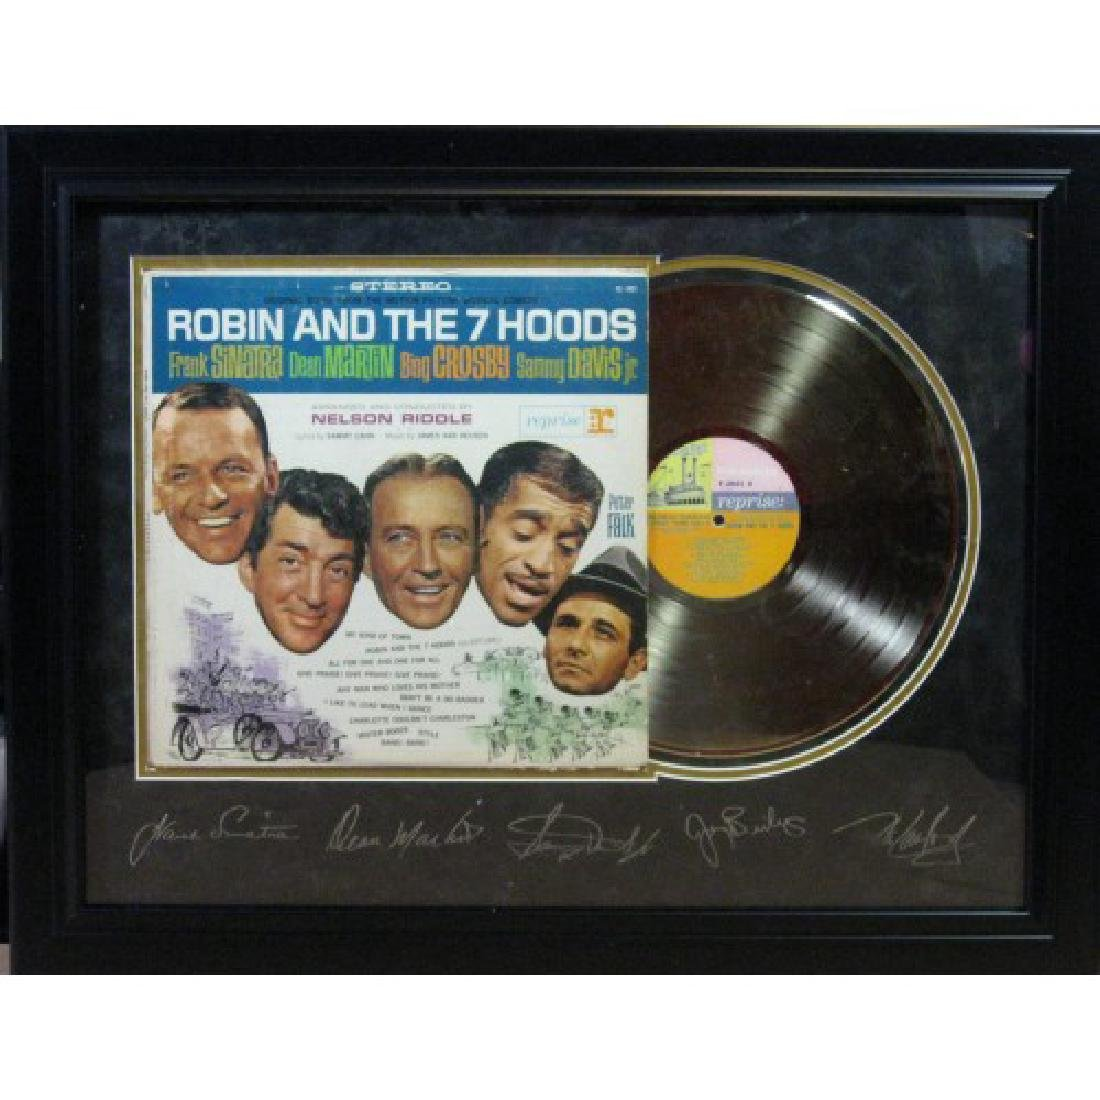 Robin & the 7 Hoods Engraved Gold Record